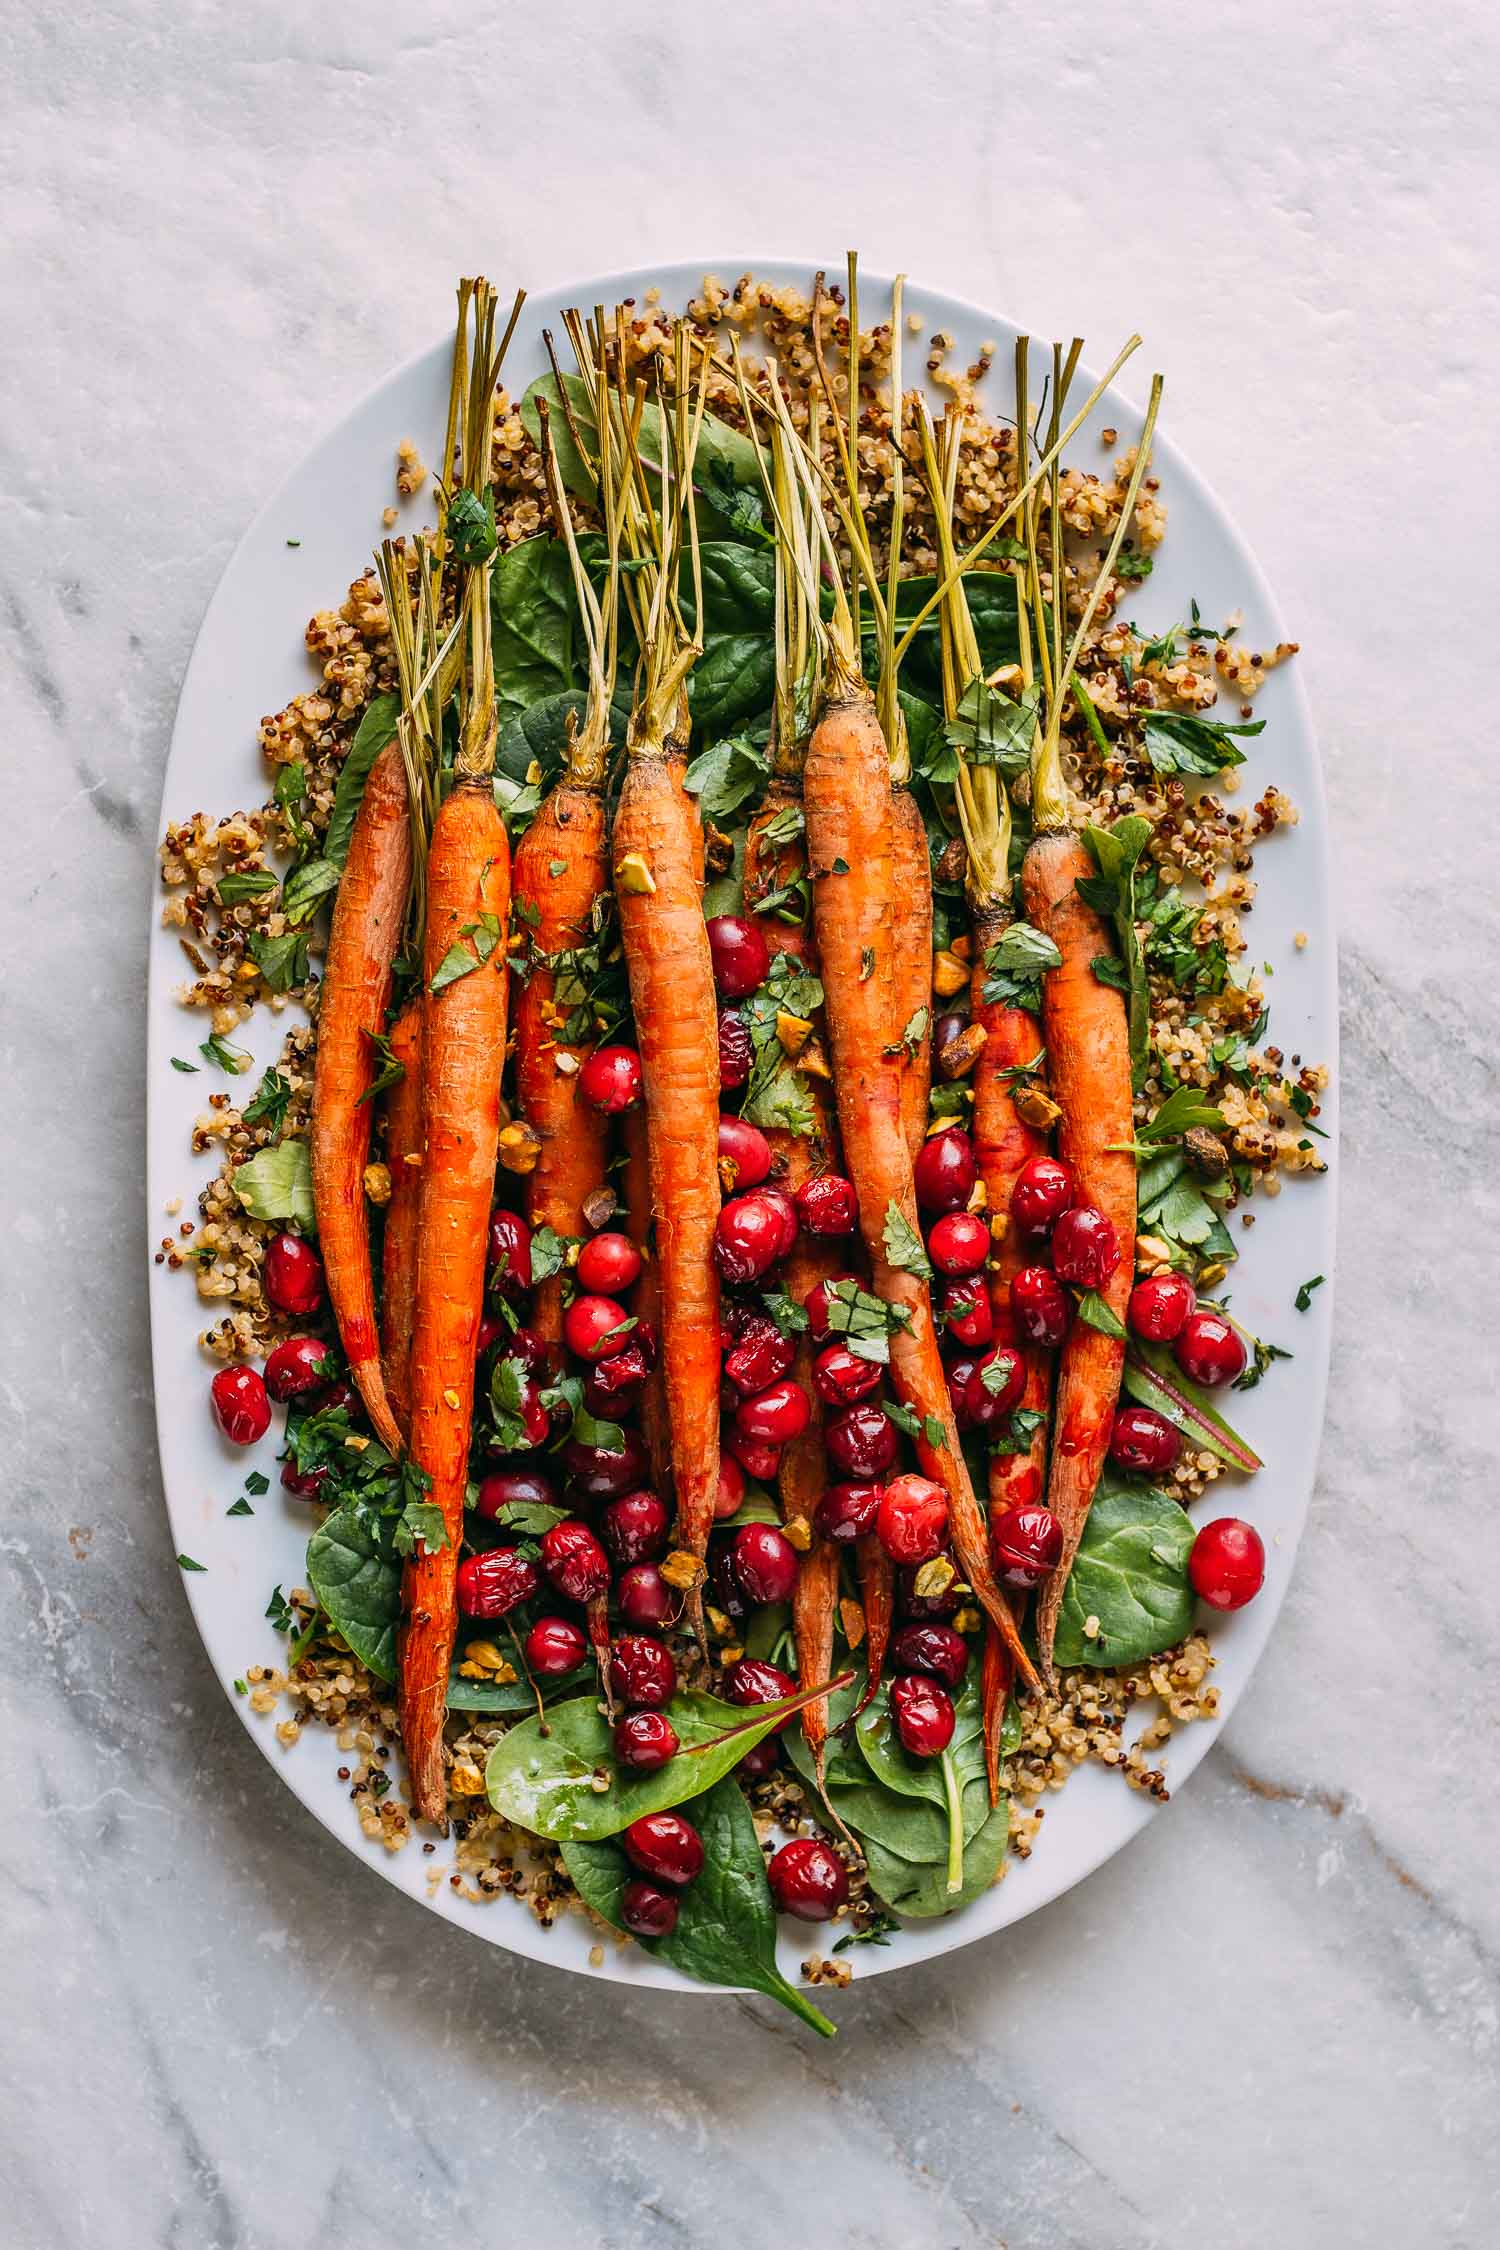 Maple Roasted Carrots and Cranberries with Pistachios #whole food plant based #plant-based #vegan #gluten-free #wfpb #wfpbno #roasted #veggies #maple syrup #cranberries #carrots #lemon #tahini #dressing #quinoa #Spring #greens #Fall #winter #Christmas #Thanksgiving #holiday #buffet #pistachios #vegetables #side dish #entree #bowl #dinner #lunch #recipe #healthy #recipes #thyme #herbs #cilantro #parsley #lemon #marinade